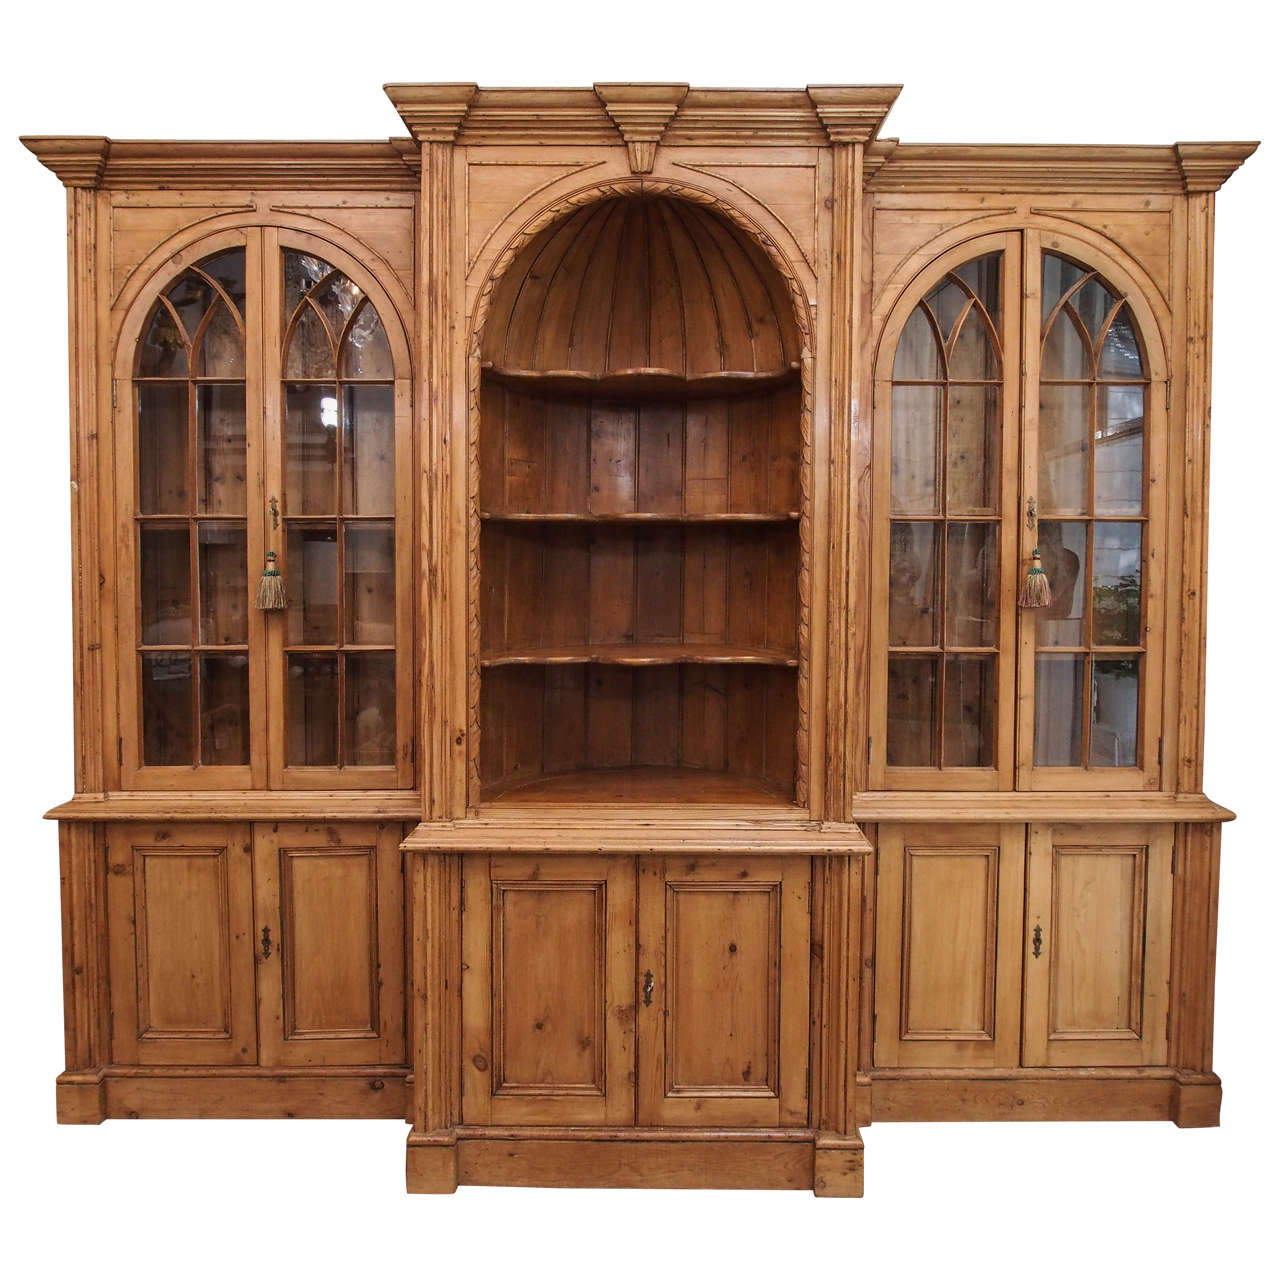 Antique English Pine Breakfront Bookcase For Sale - Antique English Pine Breakfront Bookcase At 1stdibs